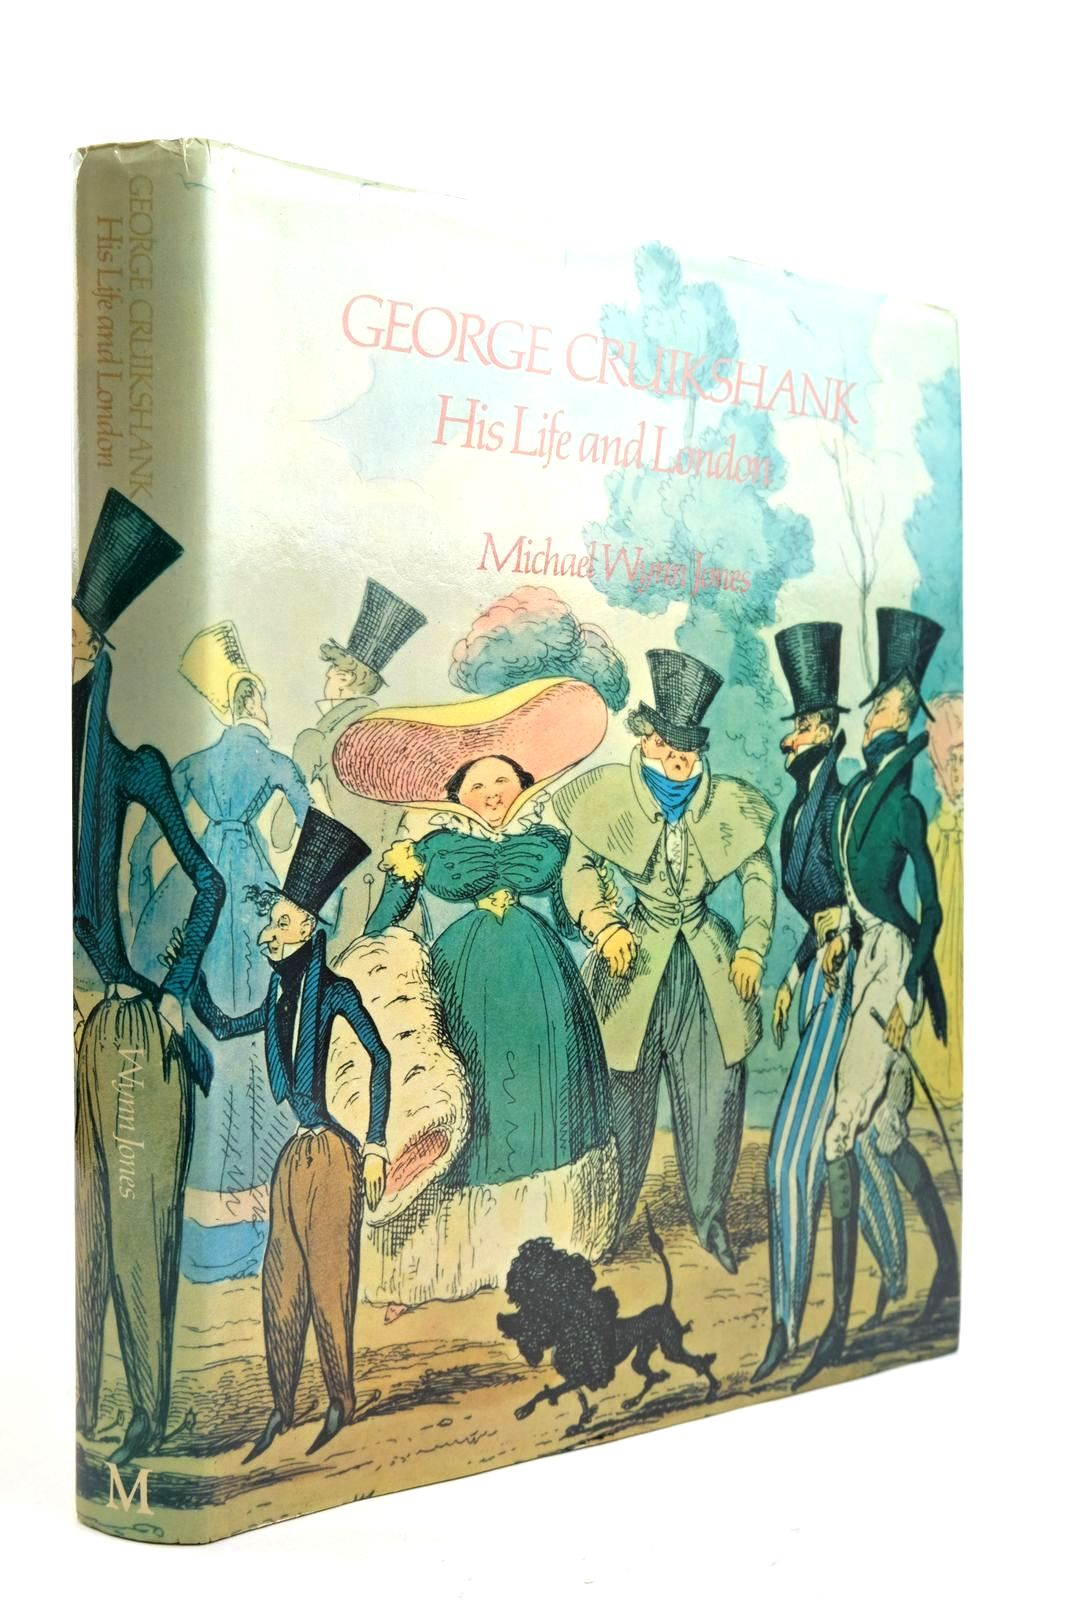 Photo of GEORGE CRUIKSHANK HIS LIFE AND LONDON written by Jones, Michael Wynn illustrated by Cruikshank, George published by Macmillan London Limited (STOCK CODE: 2132890)  for sale by Stella & Rose's Books